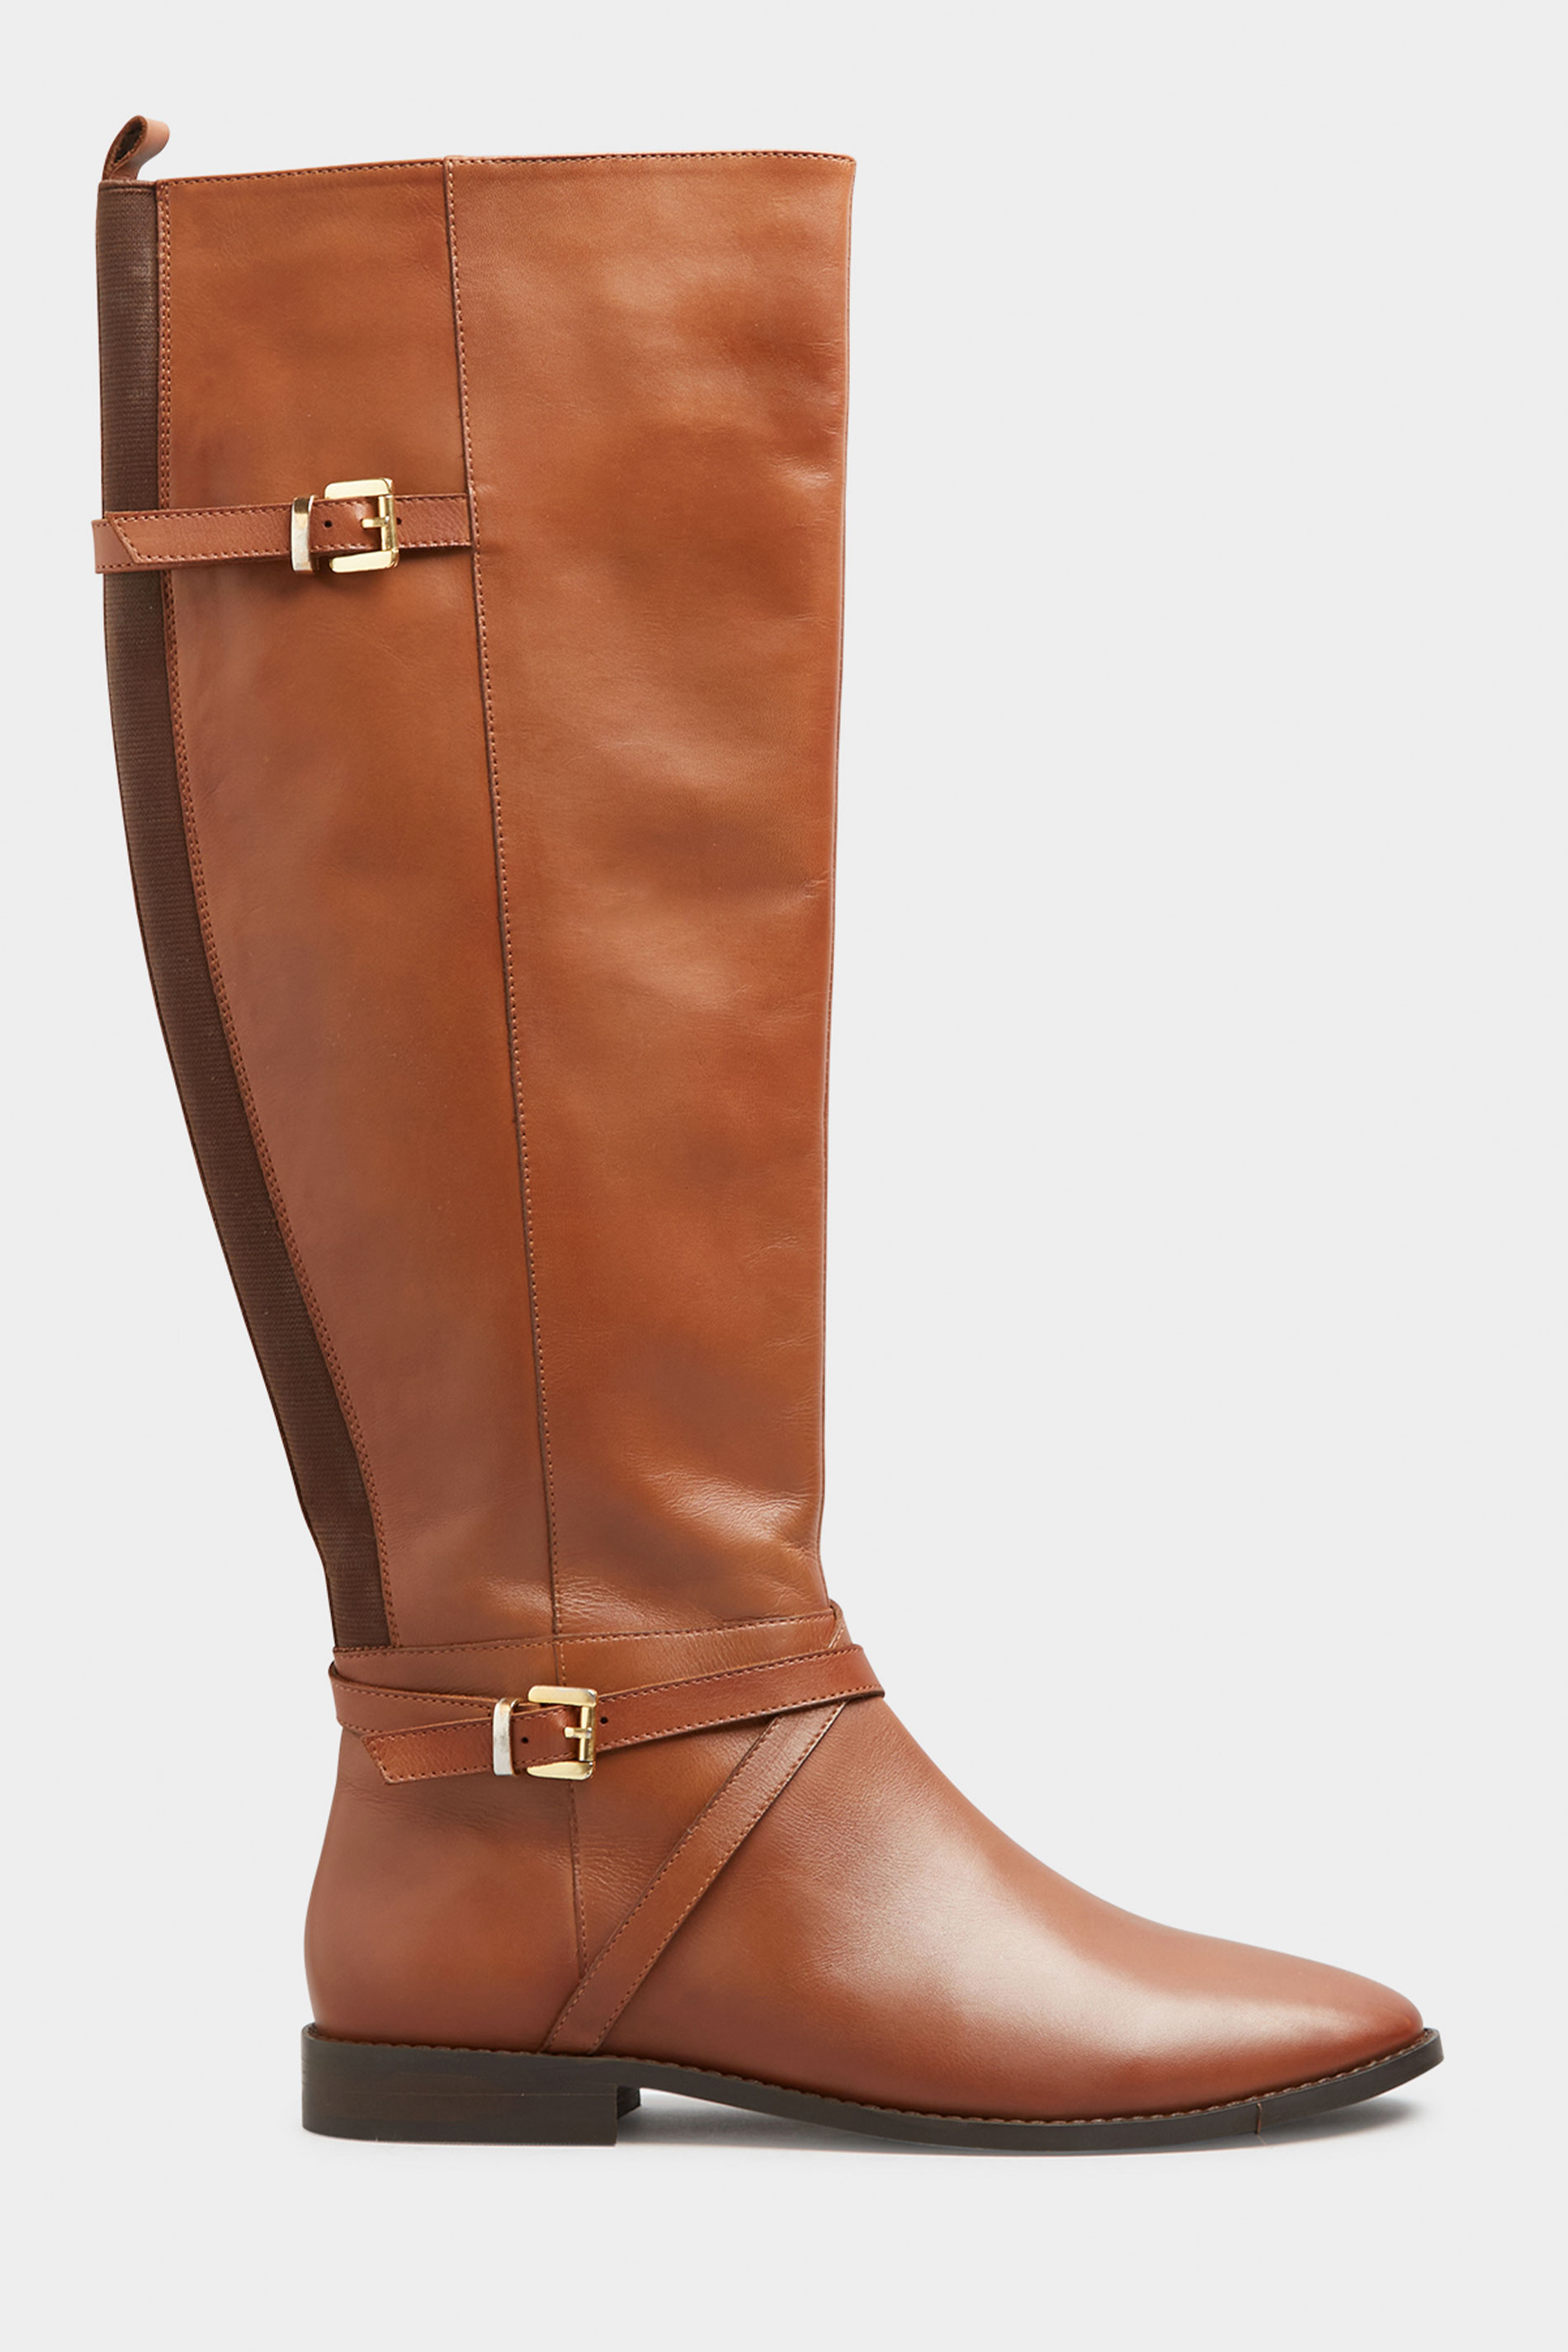 LTS Tan Leather Riding Boots_A.jpg